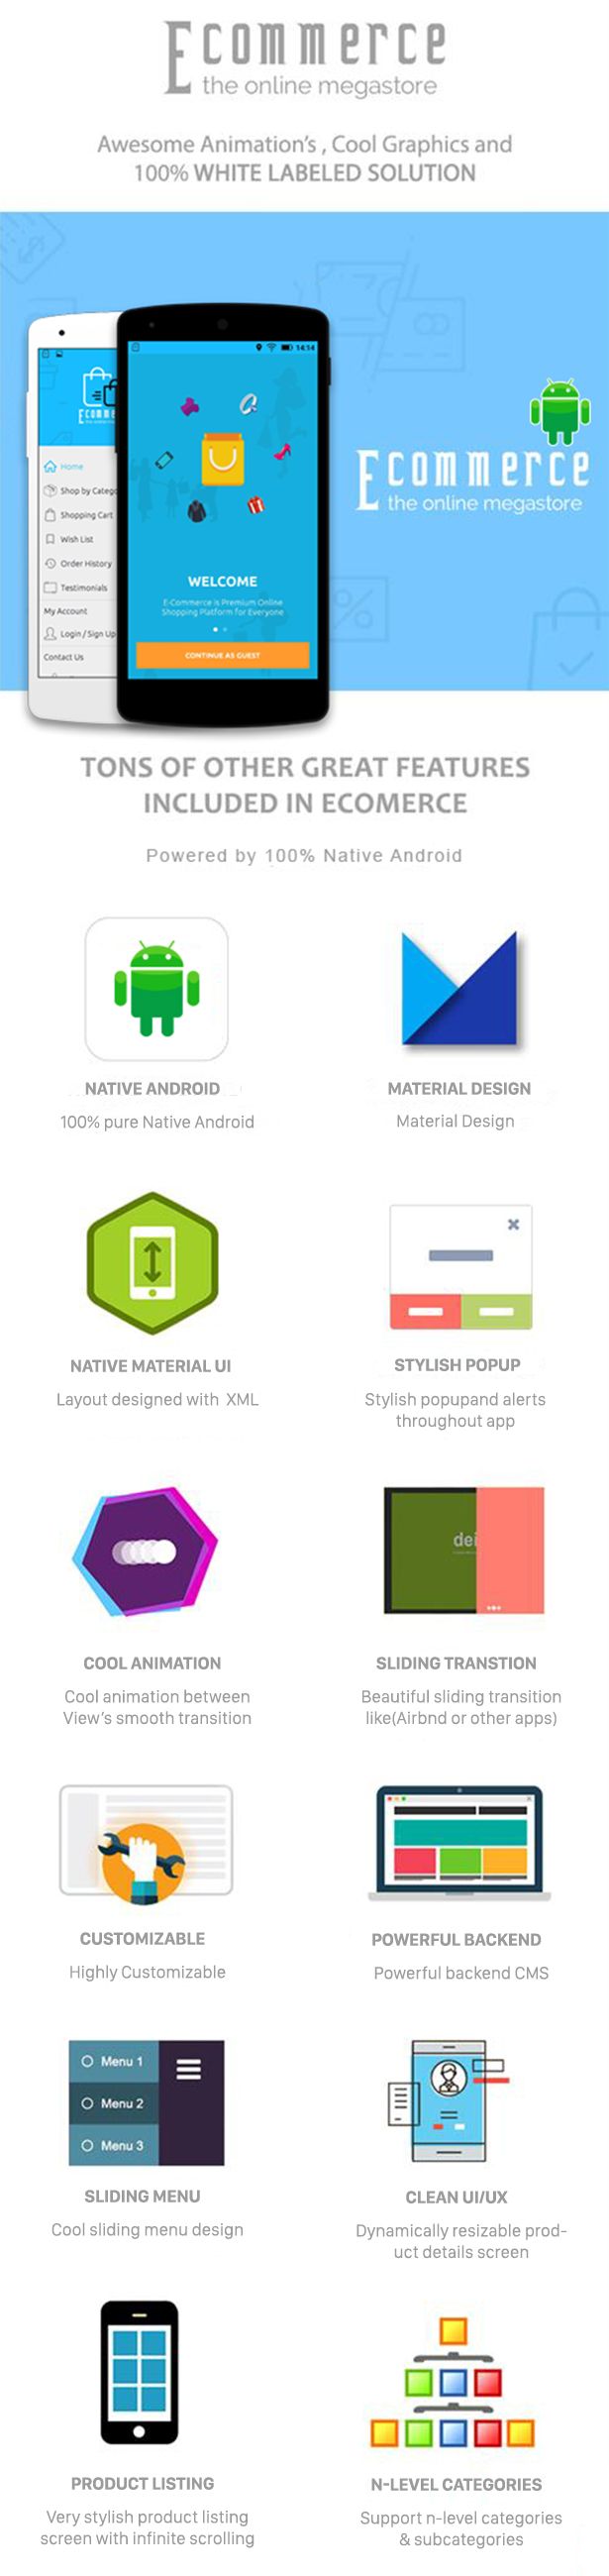 E-Commerce Android Native App with Powerful Cloud Backend - 6